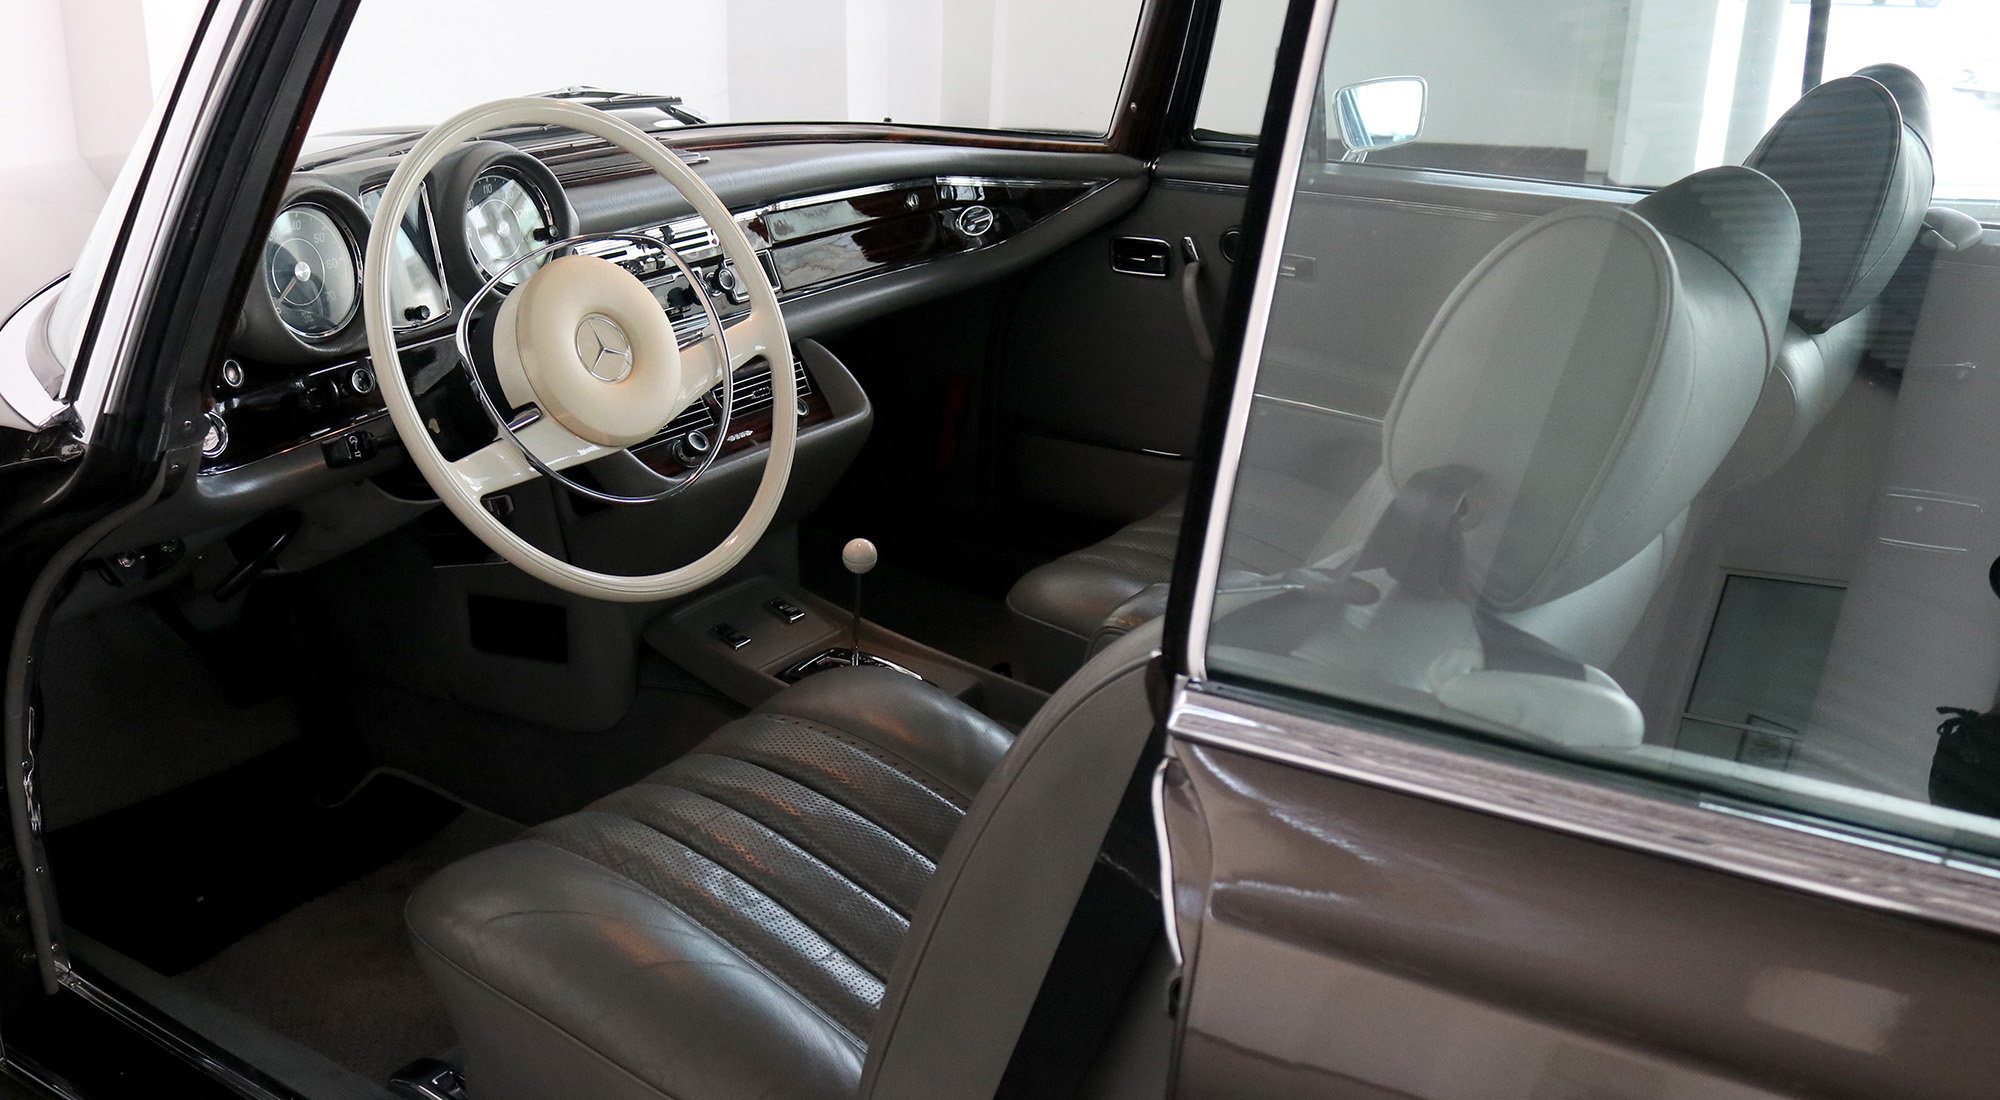 1970 Mercedes-Benz 280SE 3.5 Coupe For Sale (picture 5 of 6)